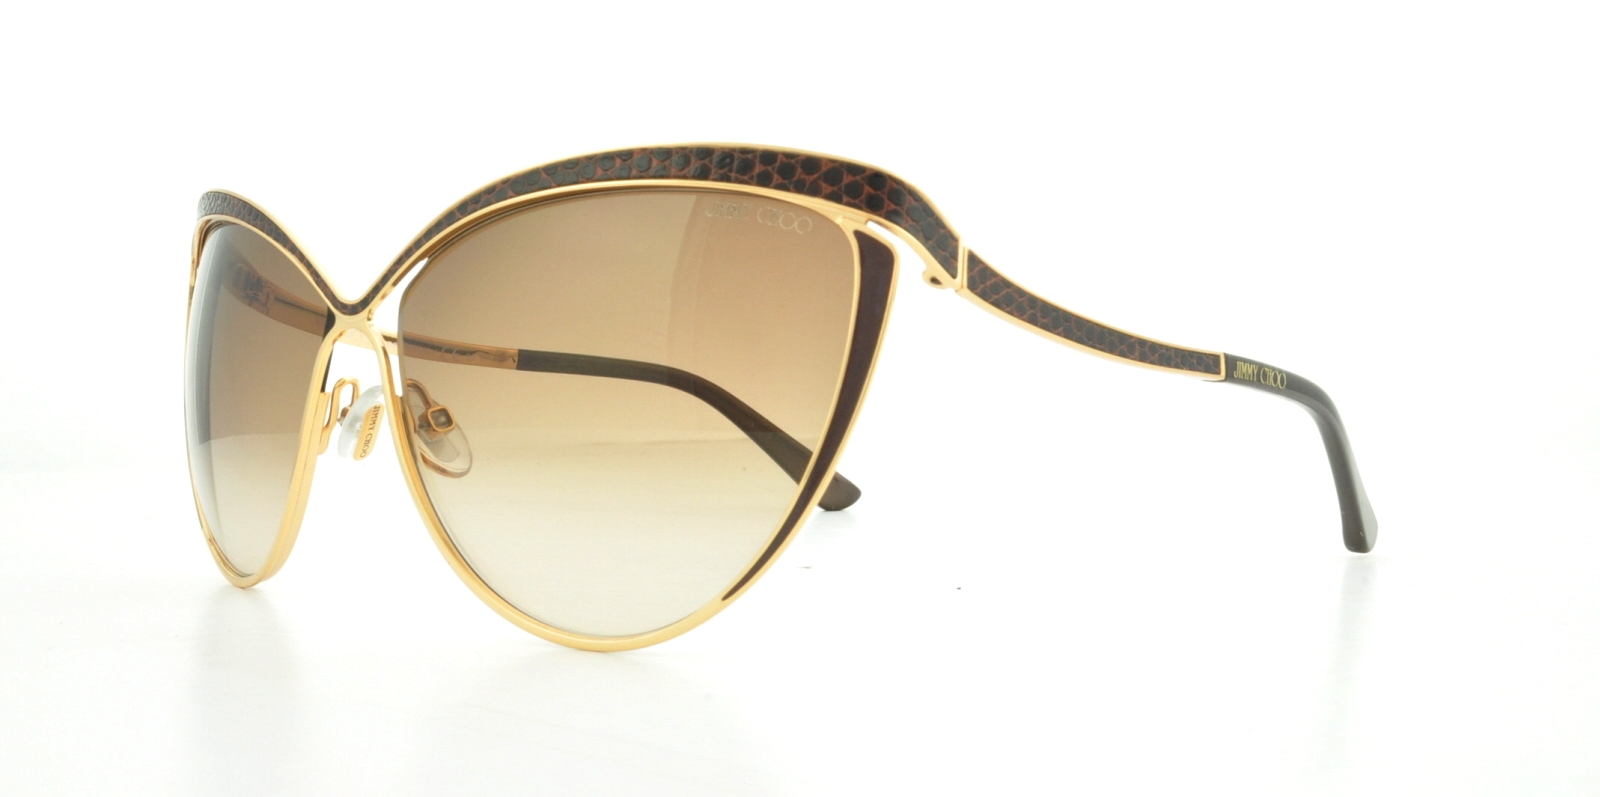 Designer Frames Outlet Jimmy Choo Polly S